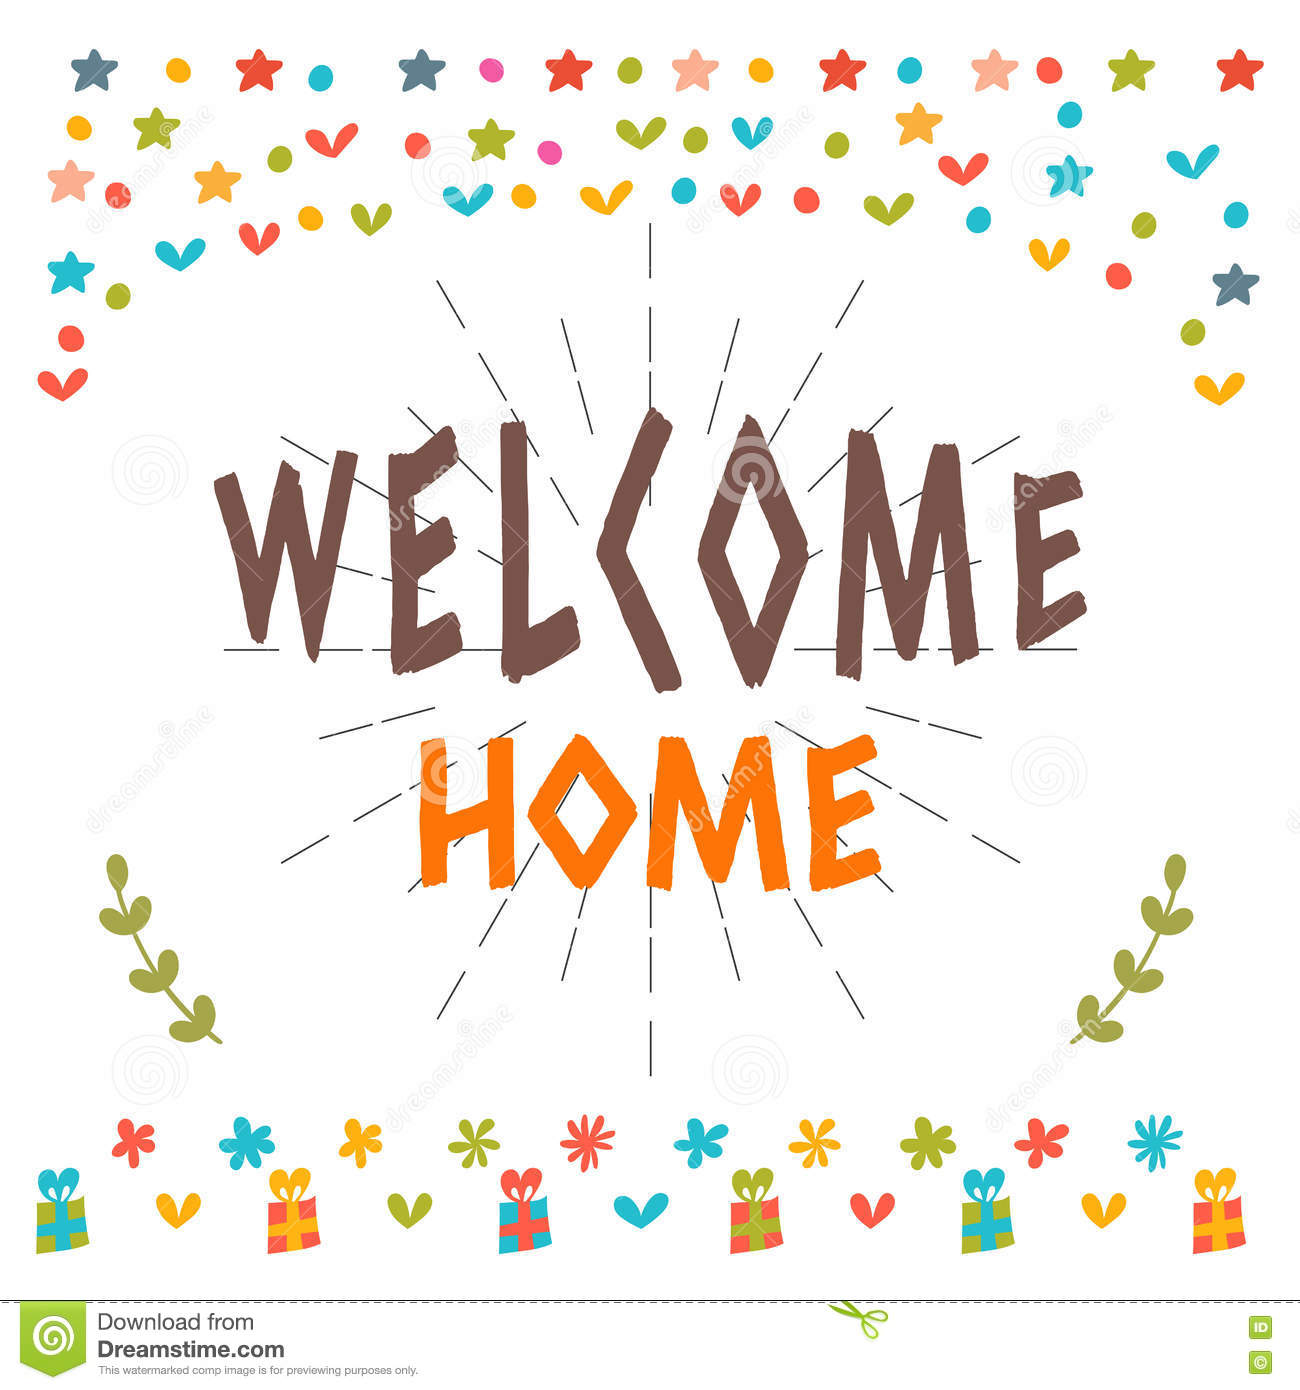 Welcome home text with colorful design elements greeting card download welcome home text with colorful design elements greeting card stock vector illustration m4hsunfo